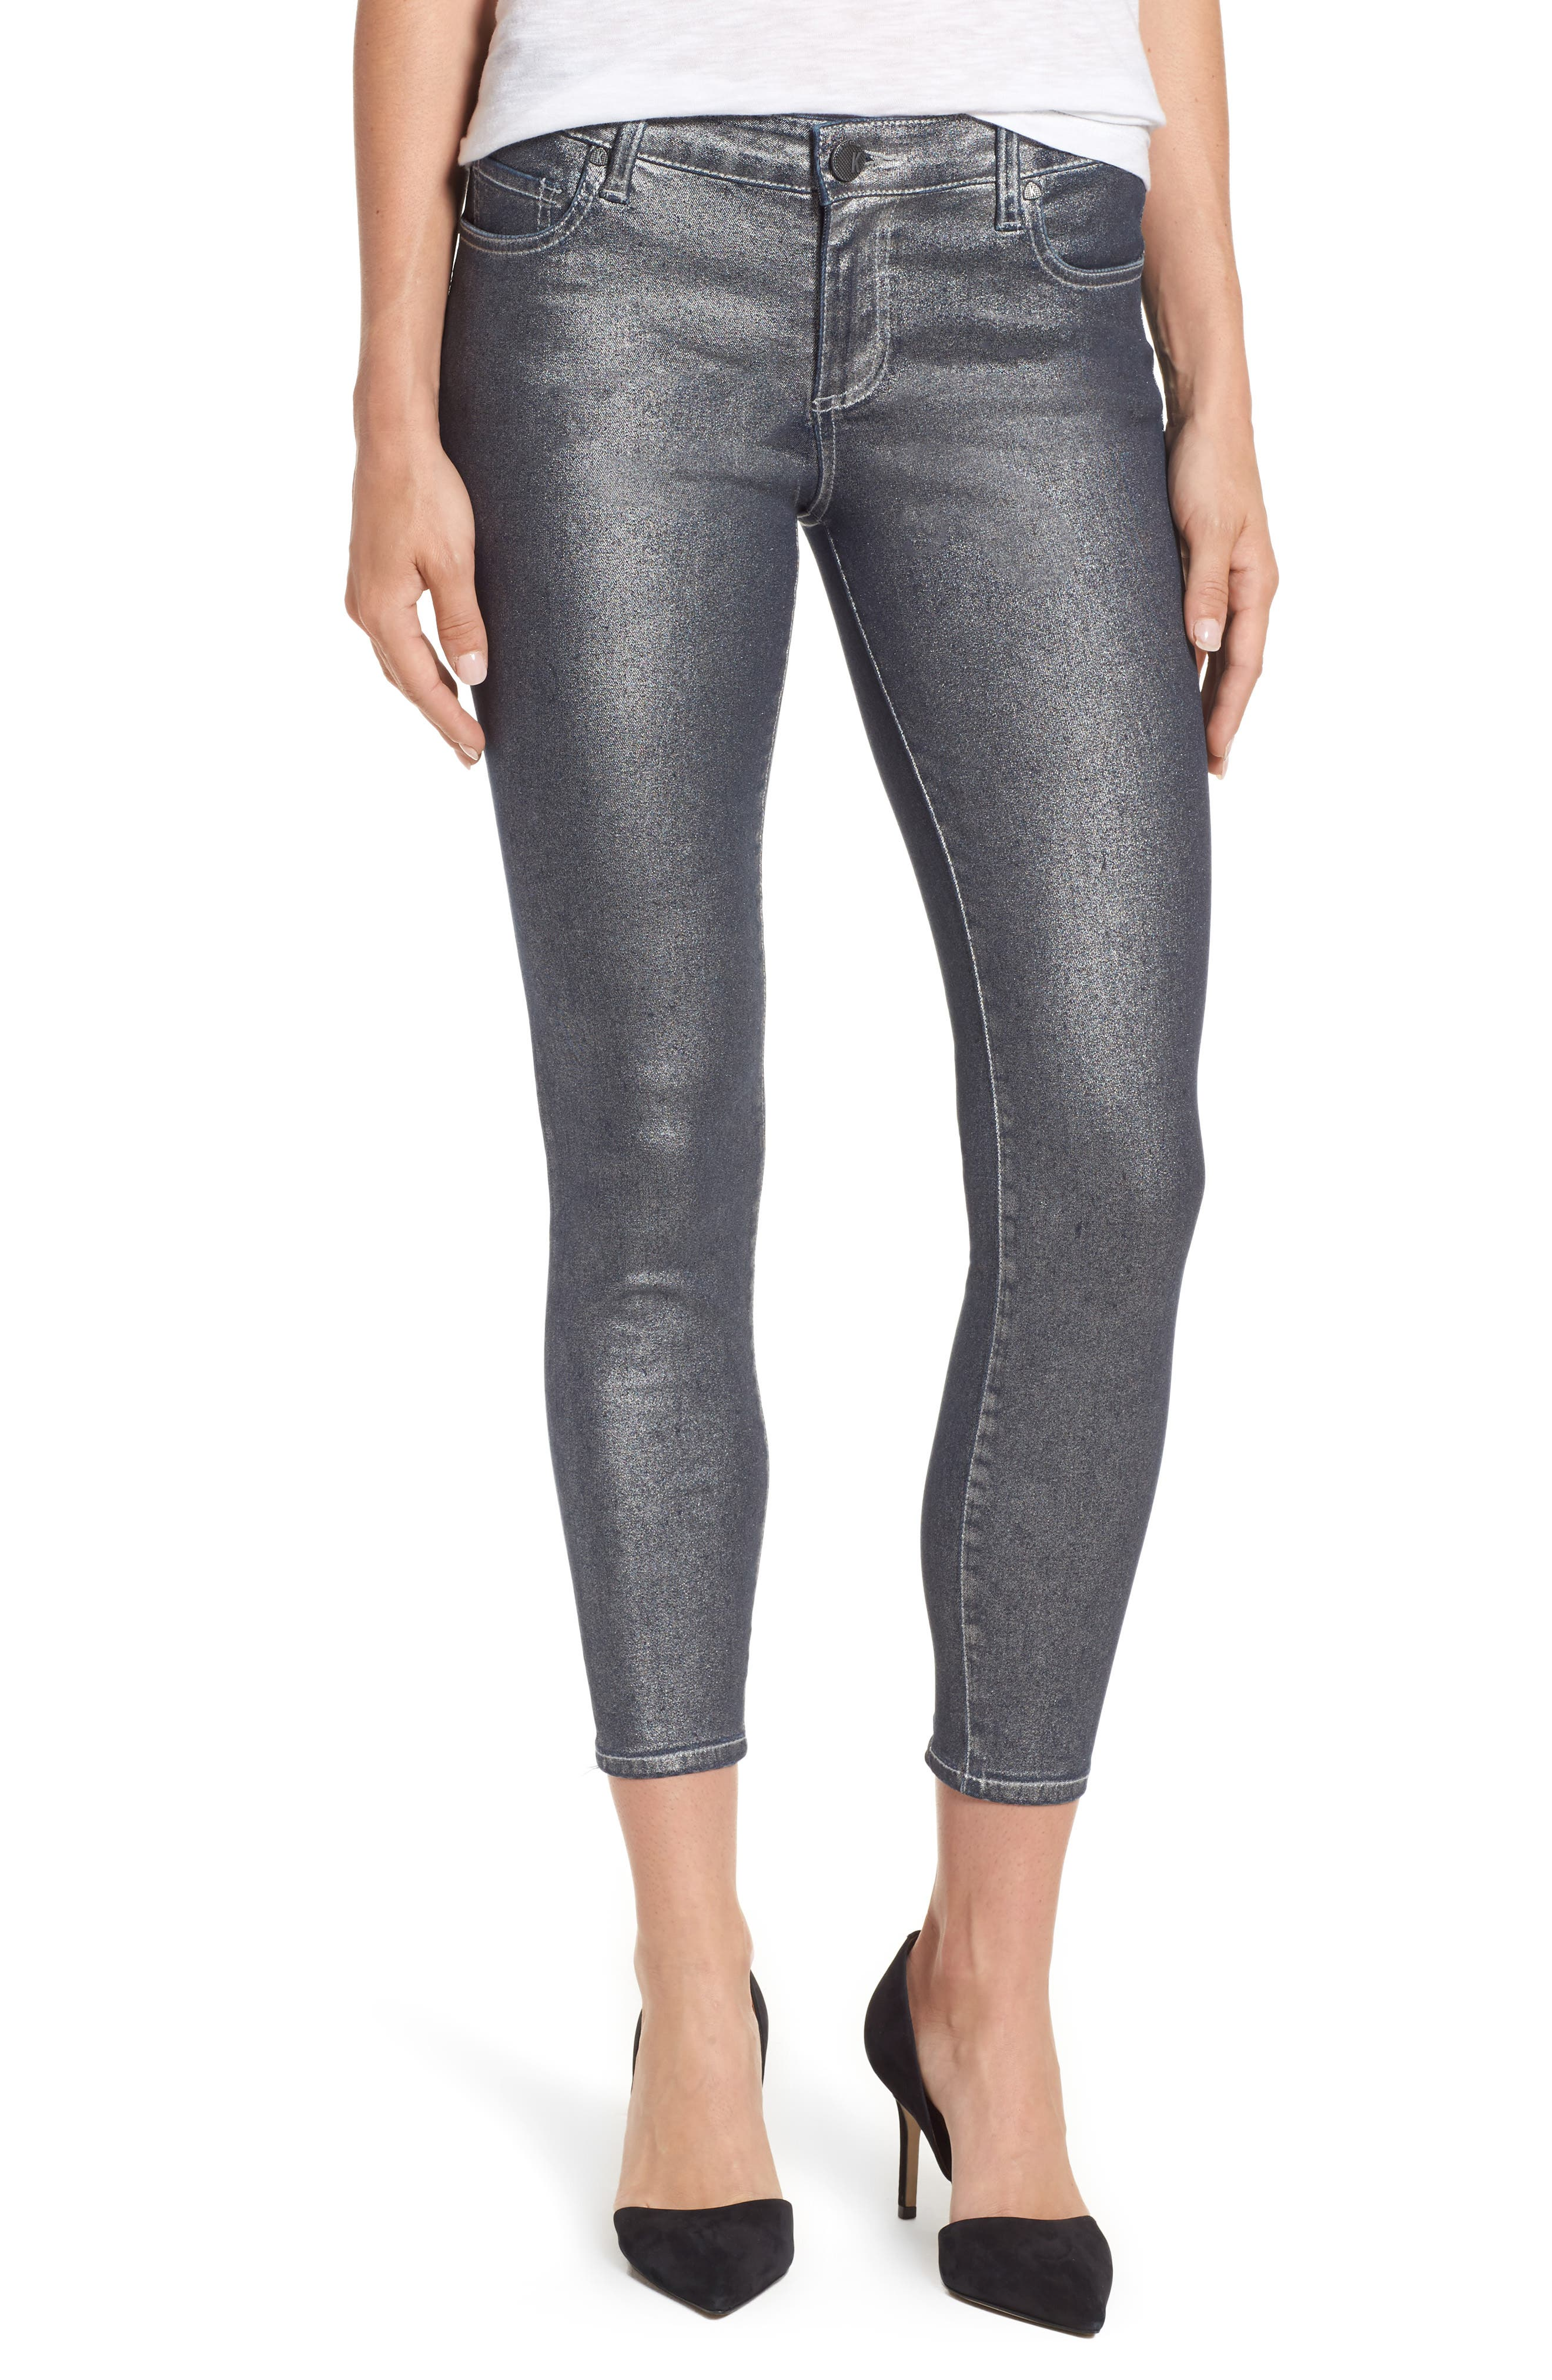 Main Image - KUT from the Kloth Connie Ankle Zipper Jeans (Silver) (Regular & Petite)